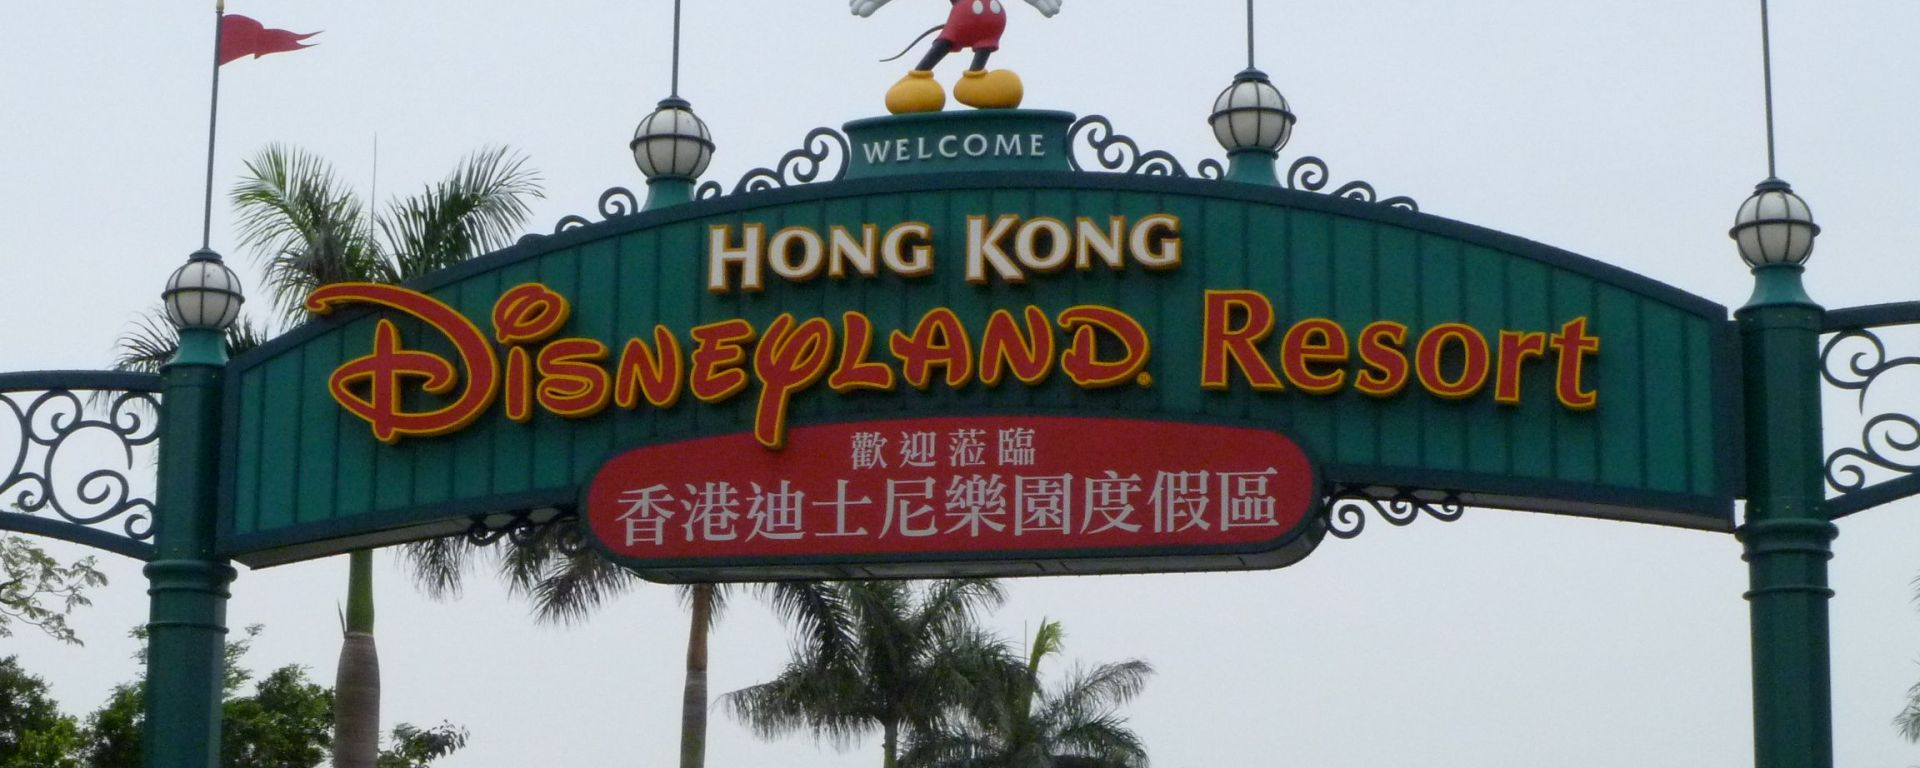 Hong Kong Disneyland Resort Sign